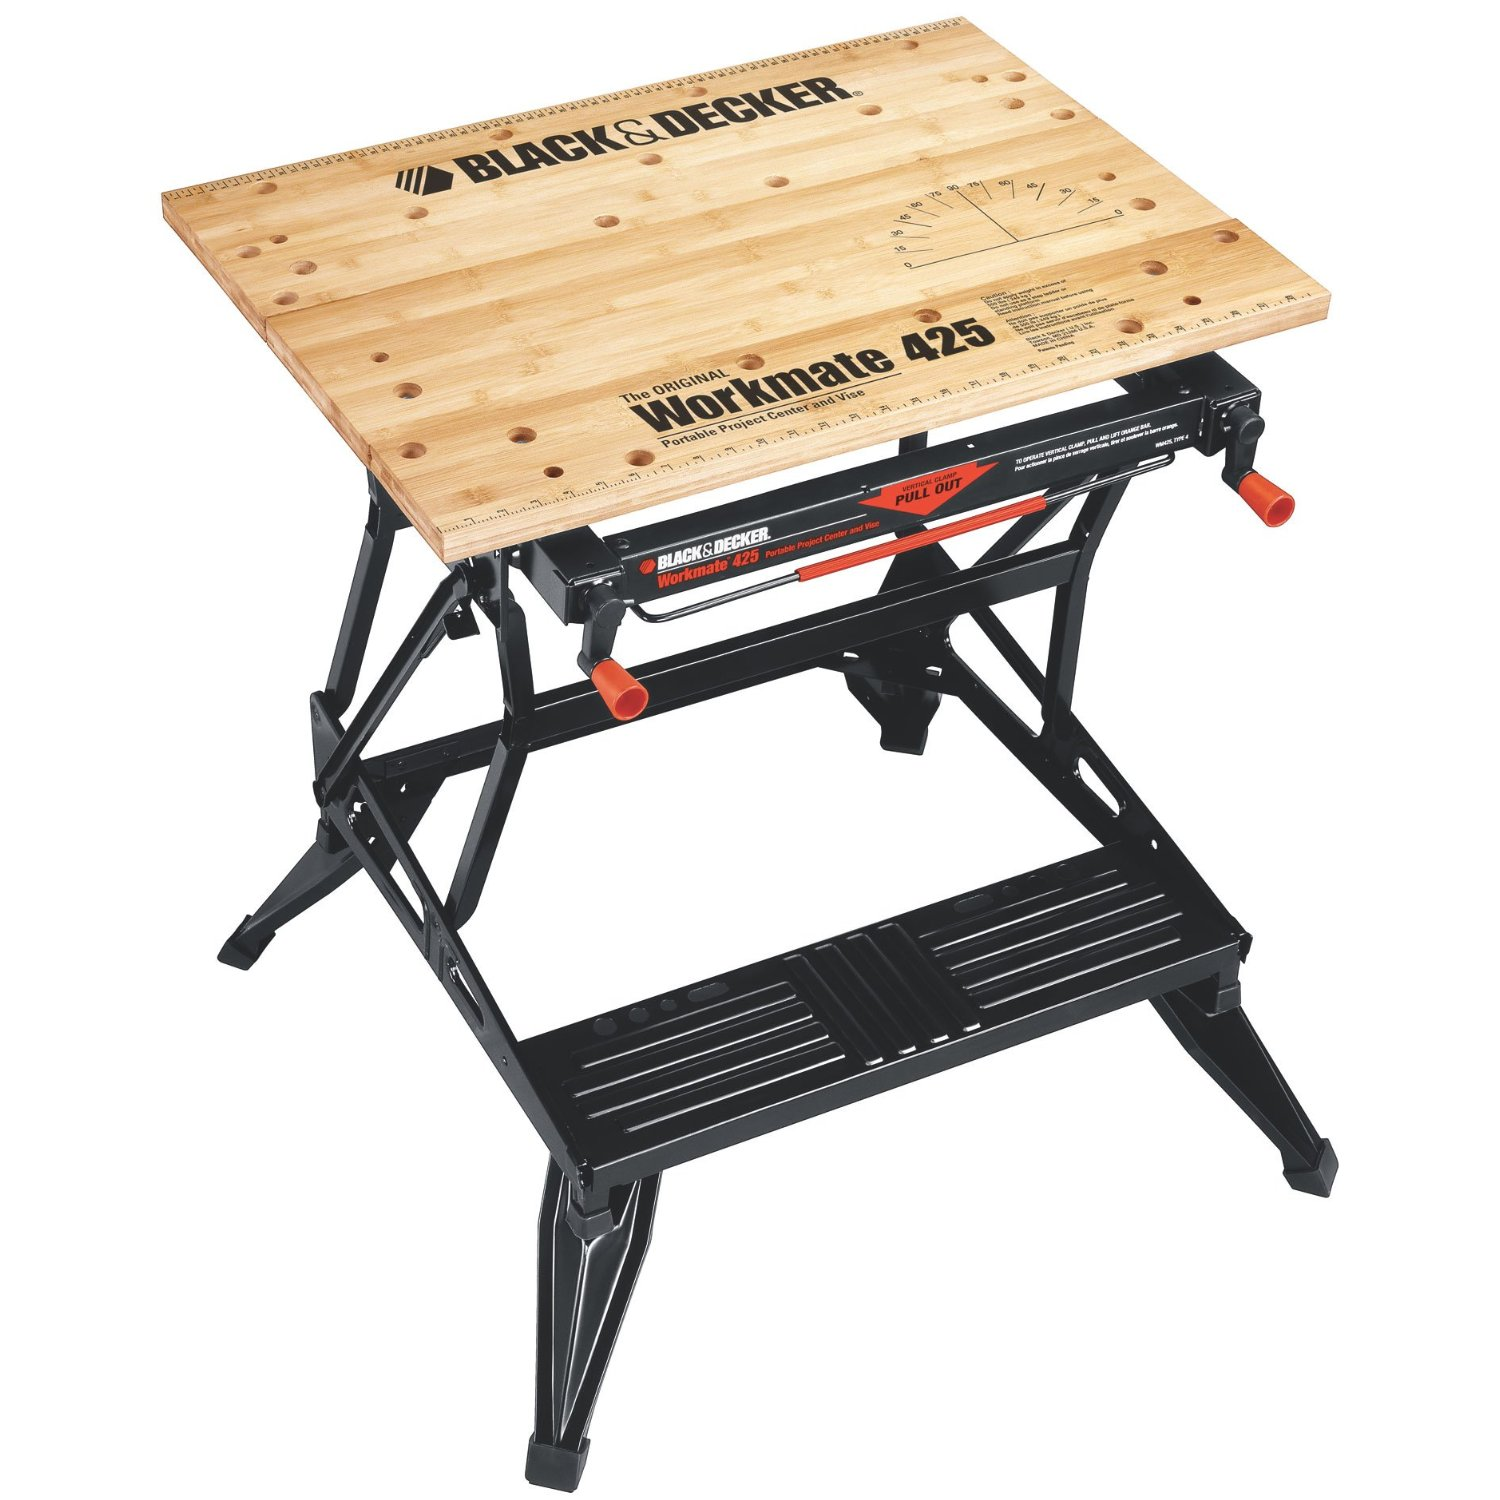 Black And Decker Workmate 425 Workbench Cheapest Price